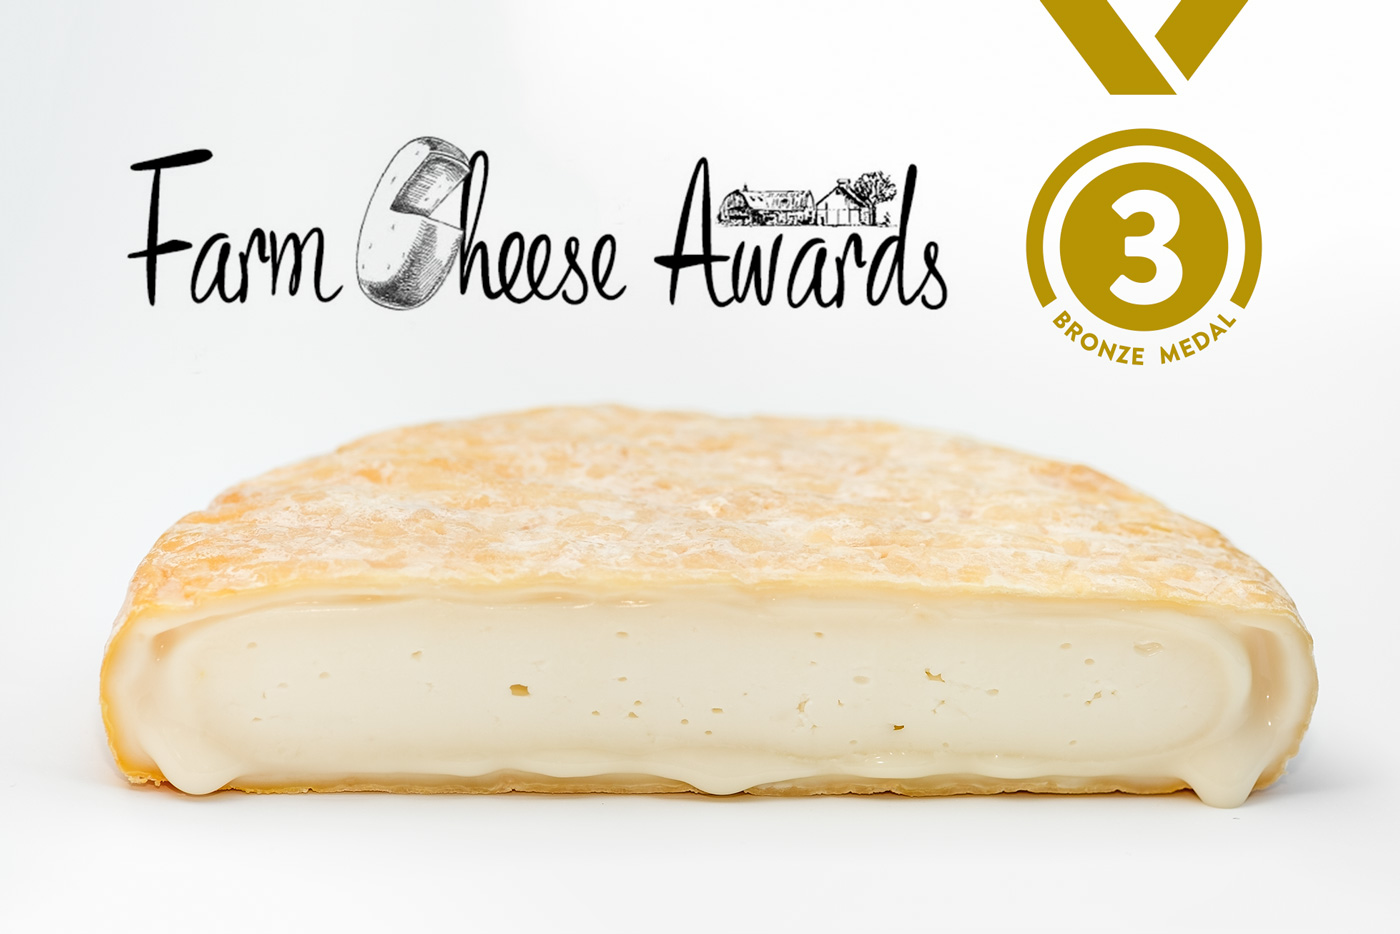 Corneel_farm-cheese-award_v2.jpg